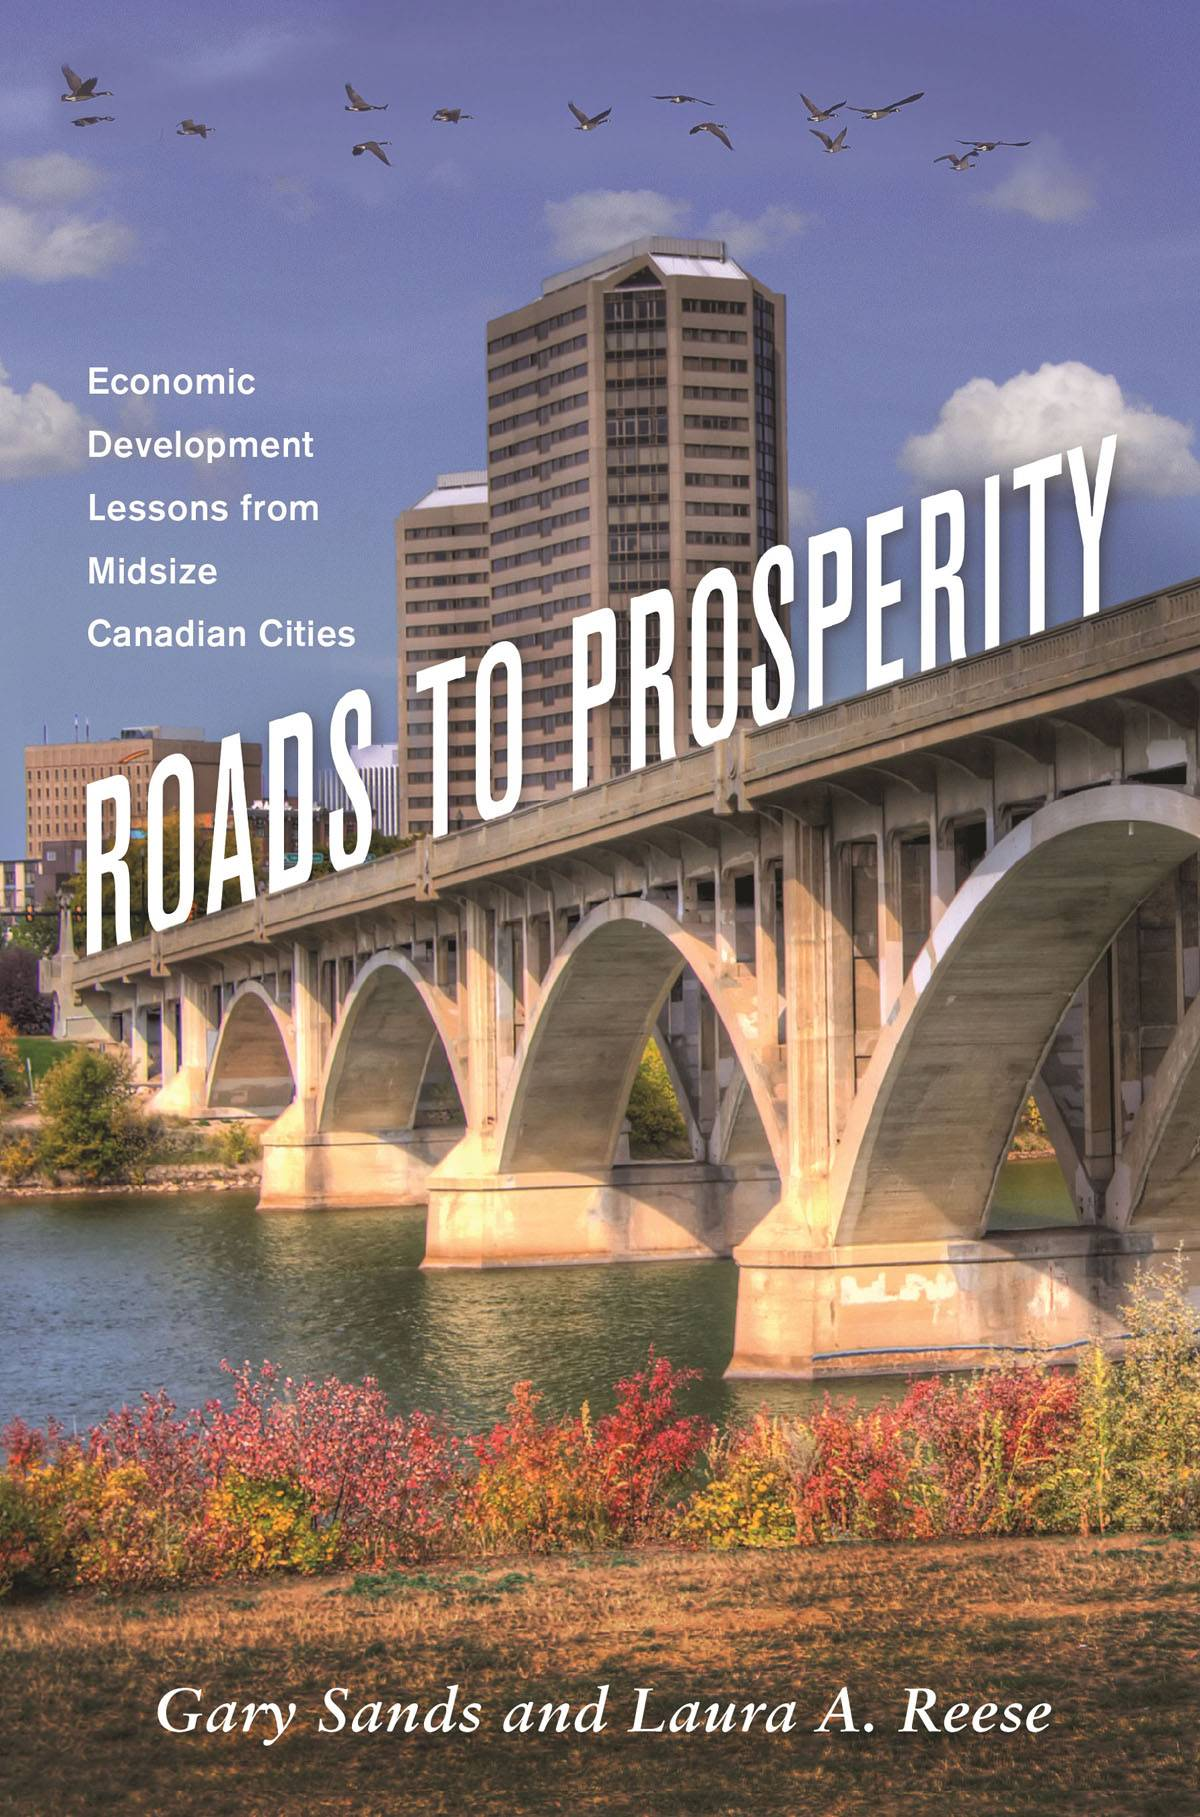 Roads to Prosperity: Economic Development Lessons from Midsize Canadian Cities (Great Lakes Books Series)